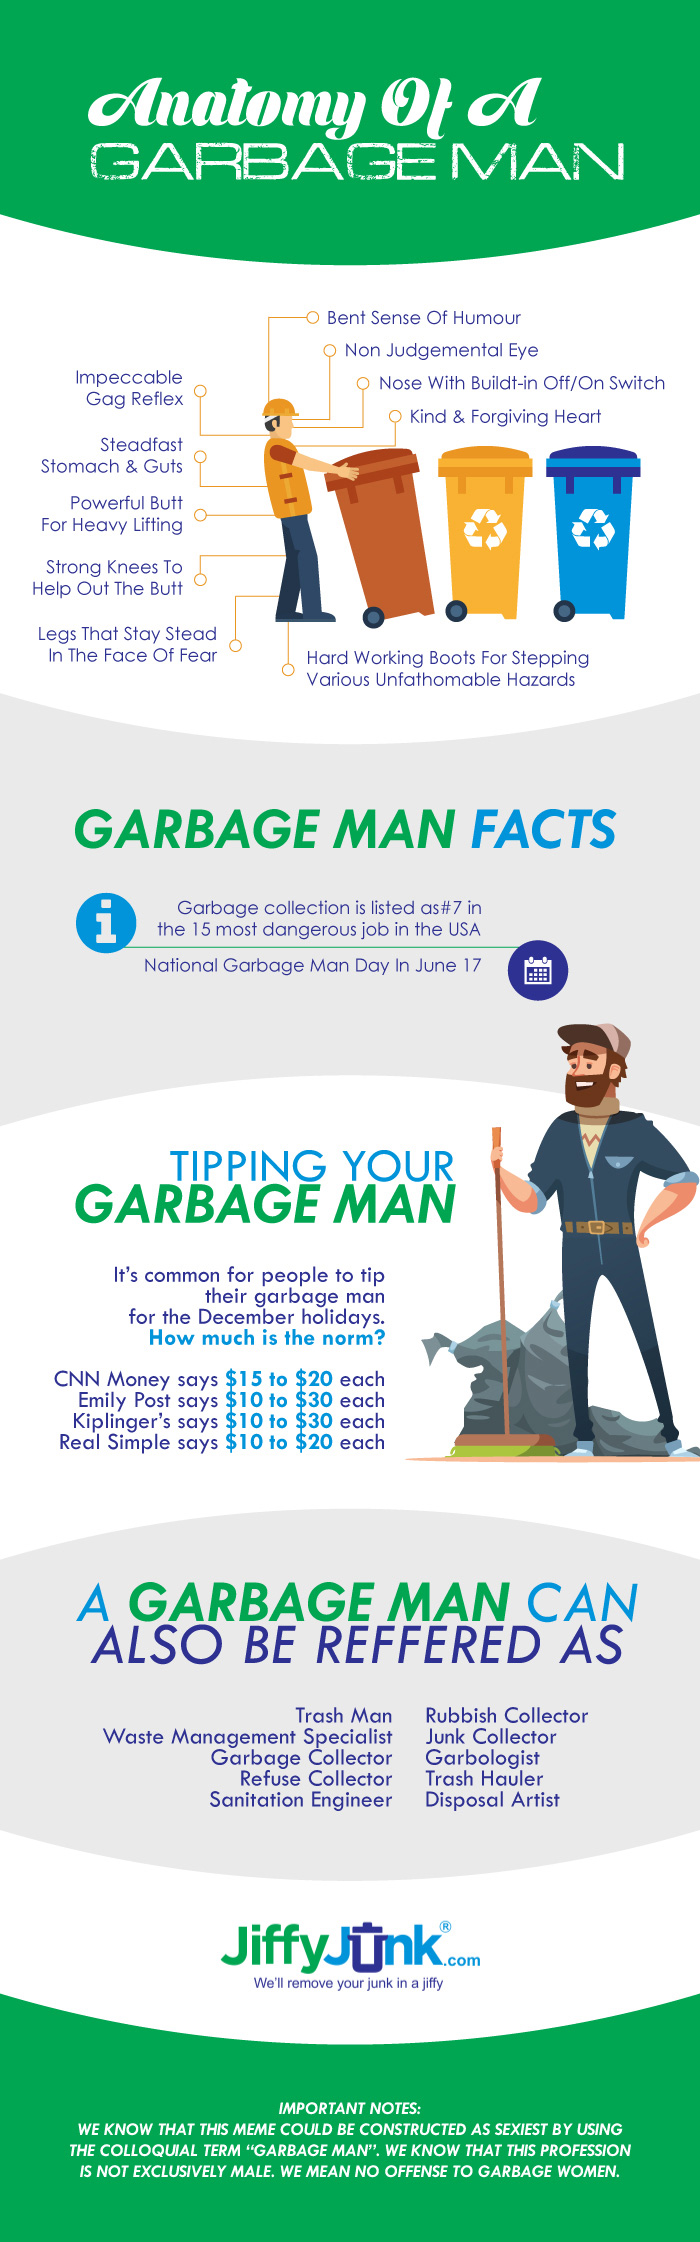 Anatomy-of-A-Garbage-Man-Infographic.jpg